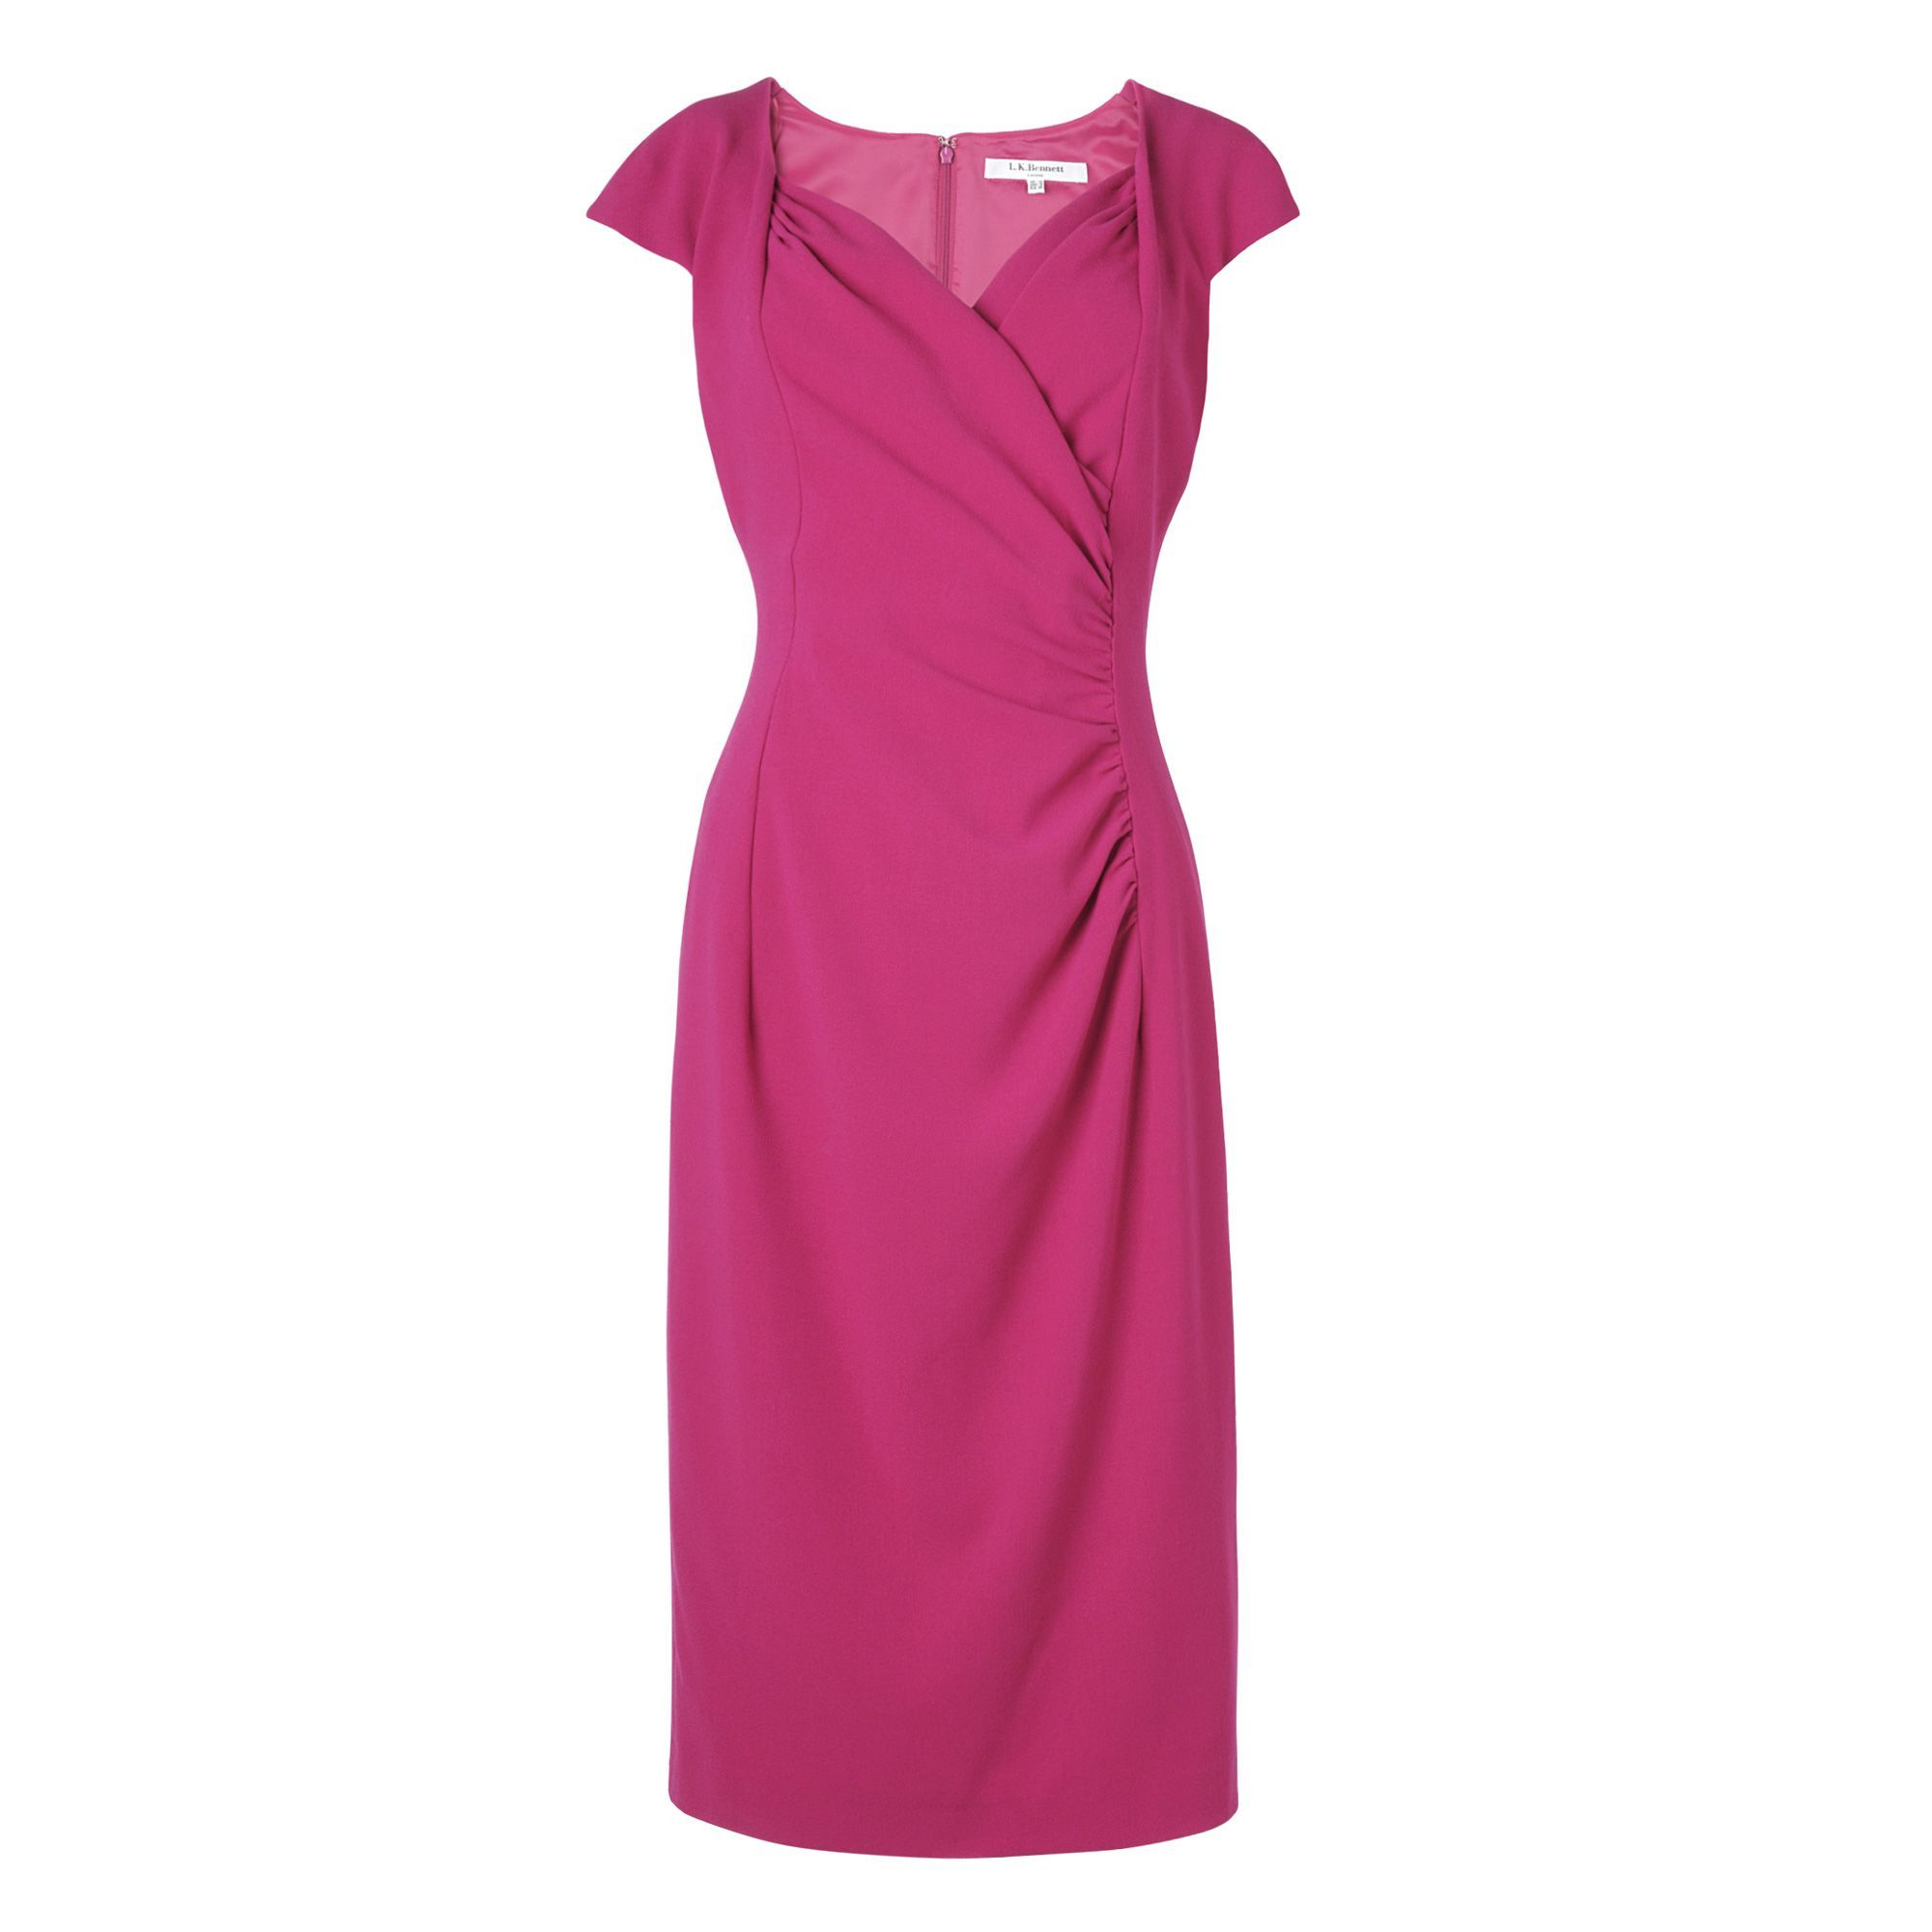 Women's Georgia Dress, Raspberry - style: shift; length: below the knee; neckline: v-neck; sleeve style: capped; pattern: plain; waist detail: twist front waist detail/nipped in at waist on one side/soft pleats/draping/ruching/gathering waist detail; predominant colour: hot pink; occasions: evening, work, occasion; fit: body skimming; fibres: polyester/polyamide - stretch; hip detail: ruching/gathering at hip; trends: brights; sleeve length: short sleeve; pattern type: fabric; pattern size: standard